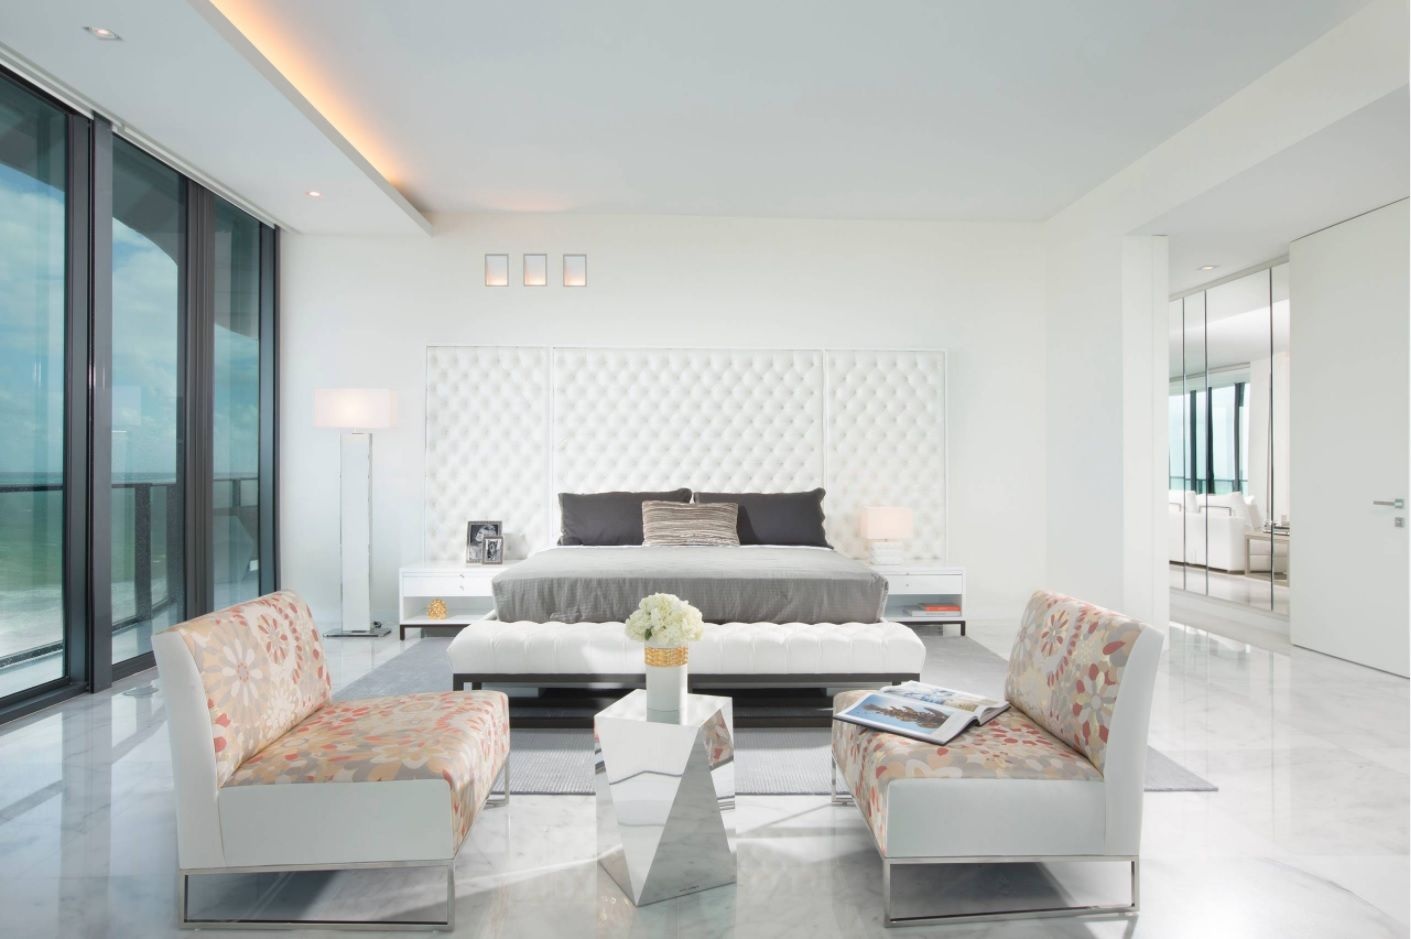 Zen Interior Design Concept for Your Home. Gray shades in the spacious room